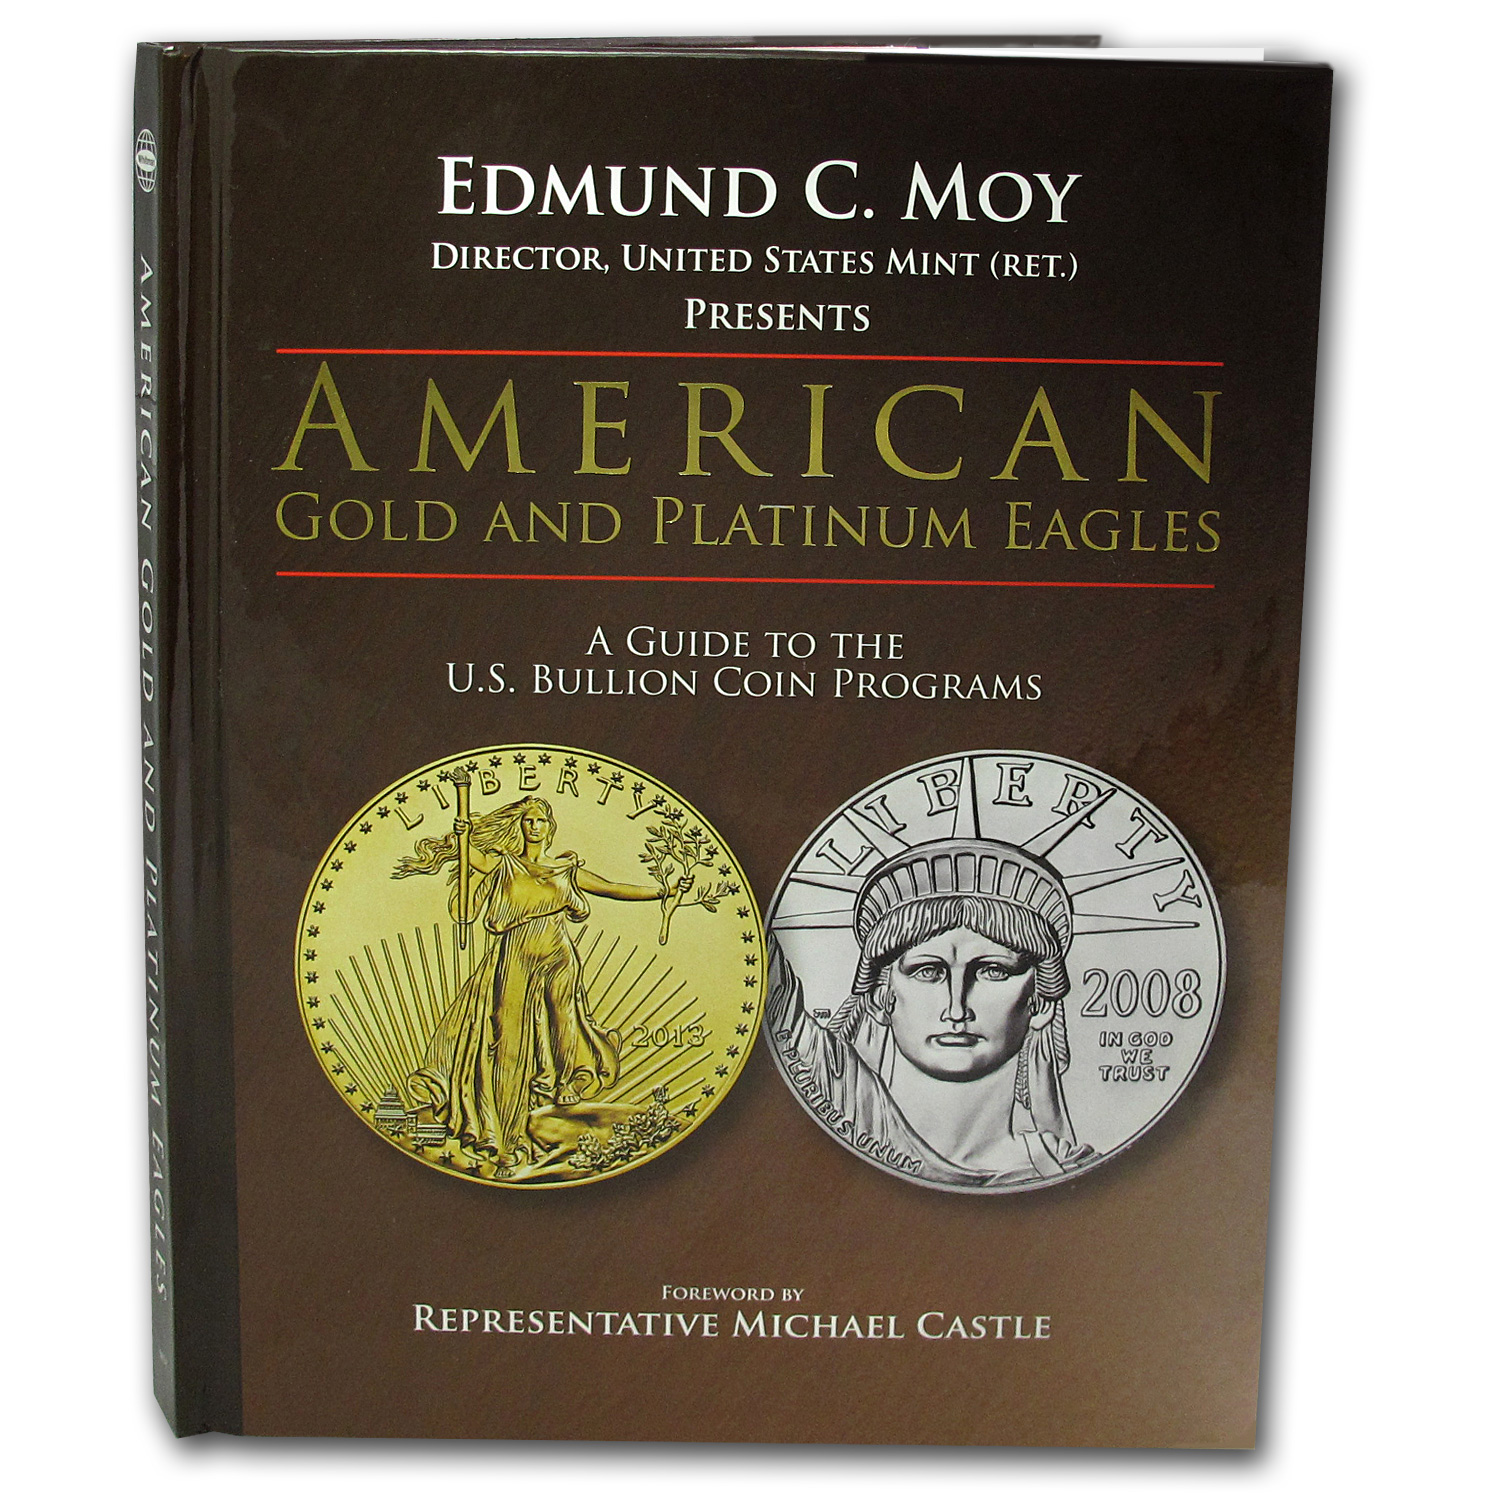 1986-1991 6-Coin 1 oz Gold American Eagle Set (Roman Numerals)